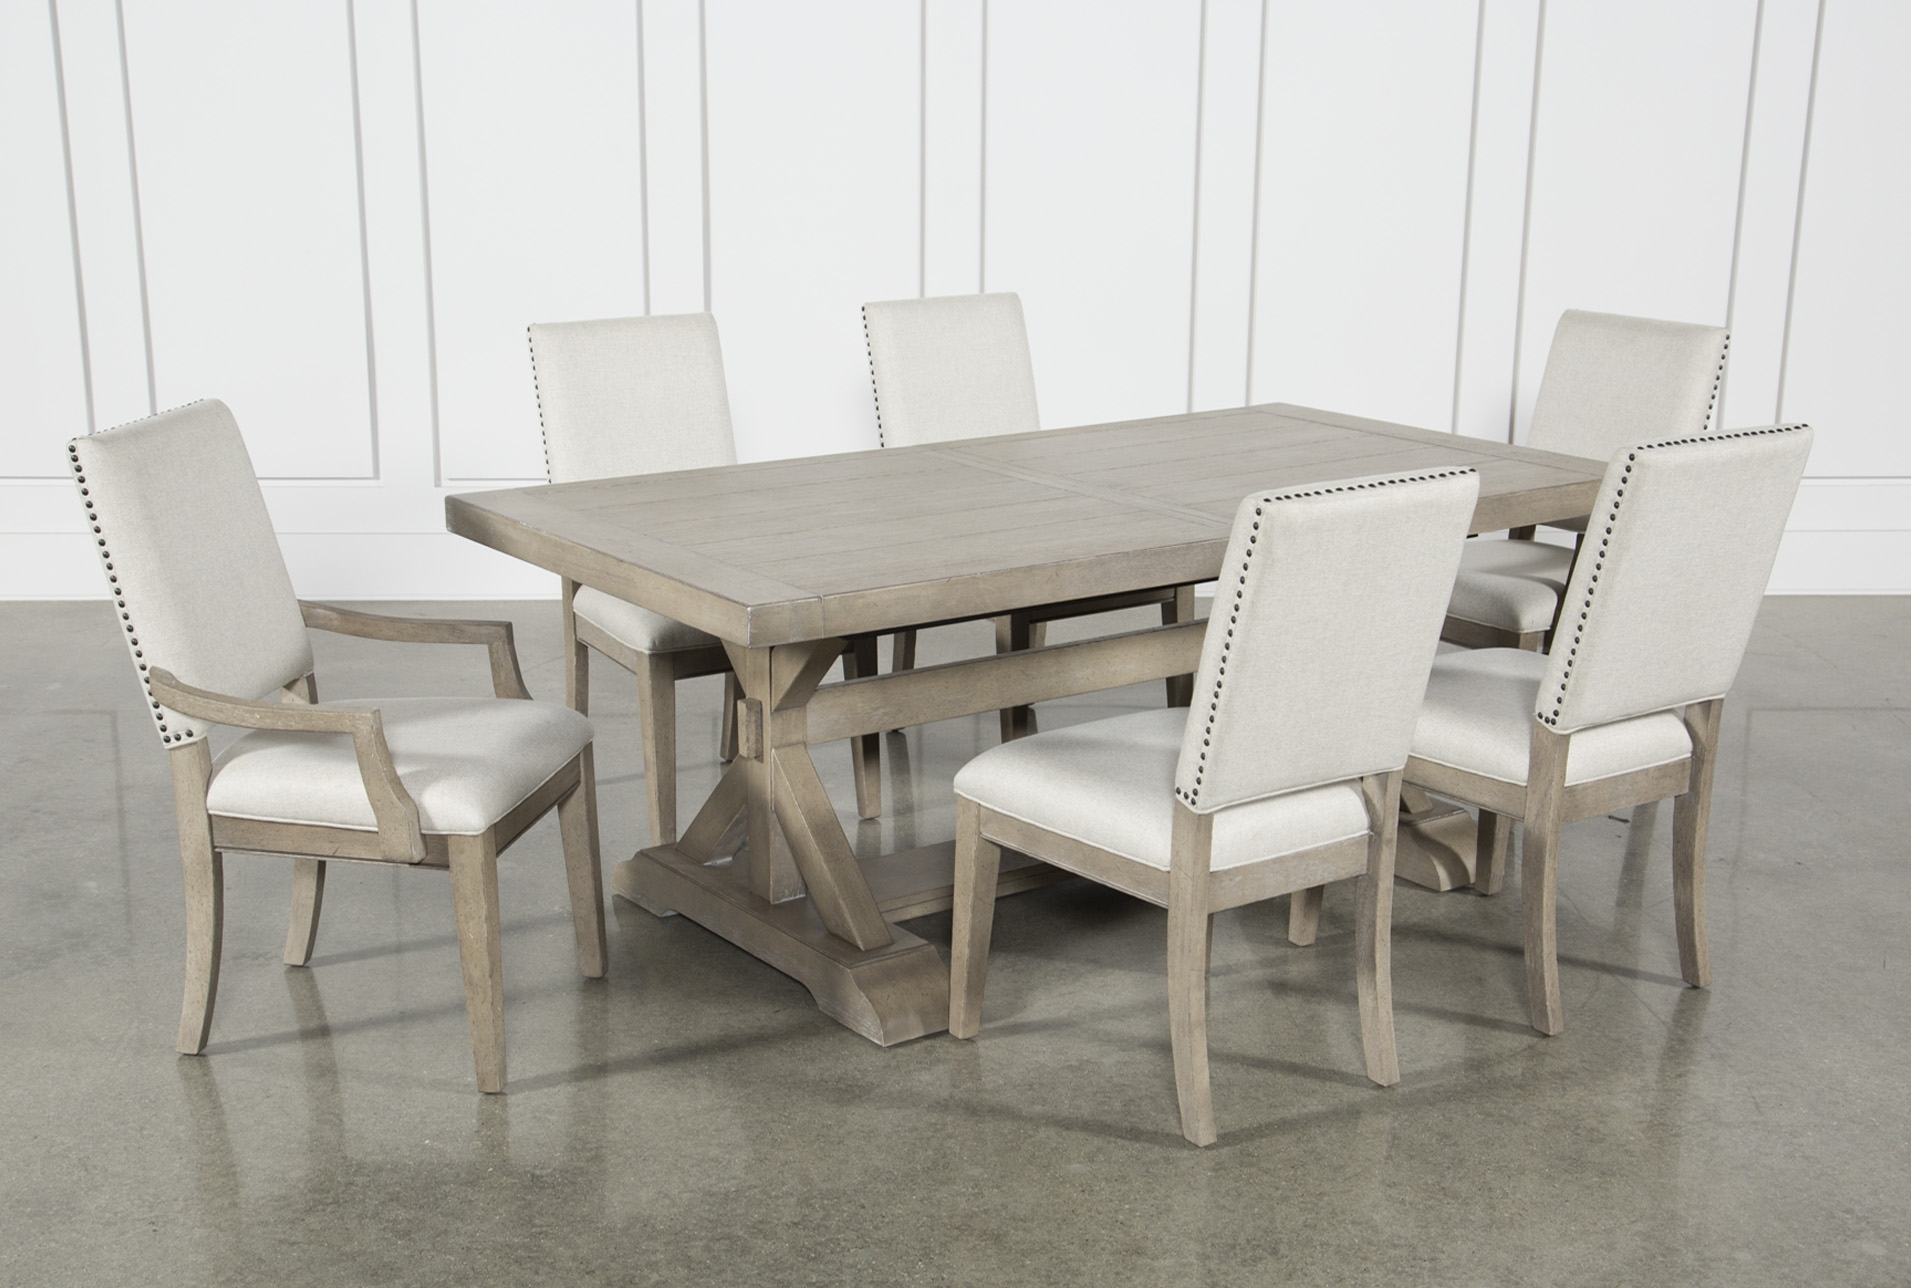 Walden 7 Piece Extension Dining Set | Products | Pinterest With 2017 Walden 7 Piece Extension Dining Sets (Image 18 of 20)